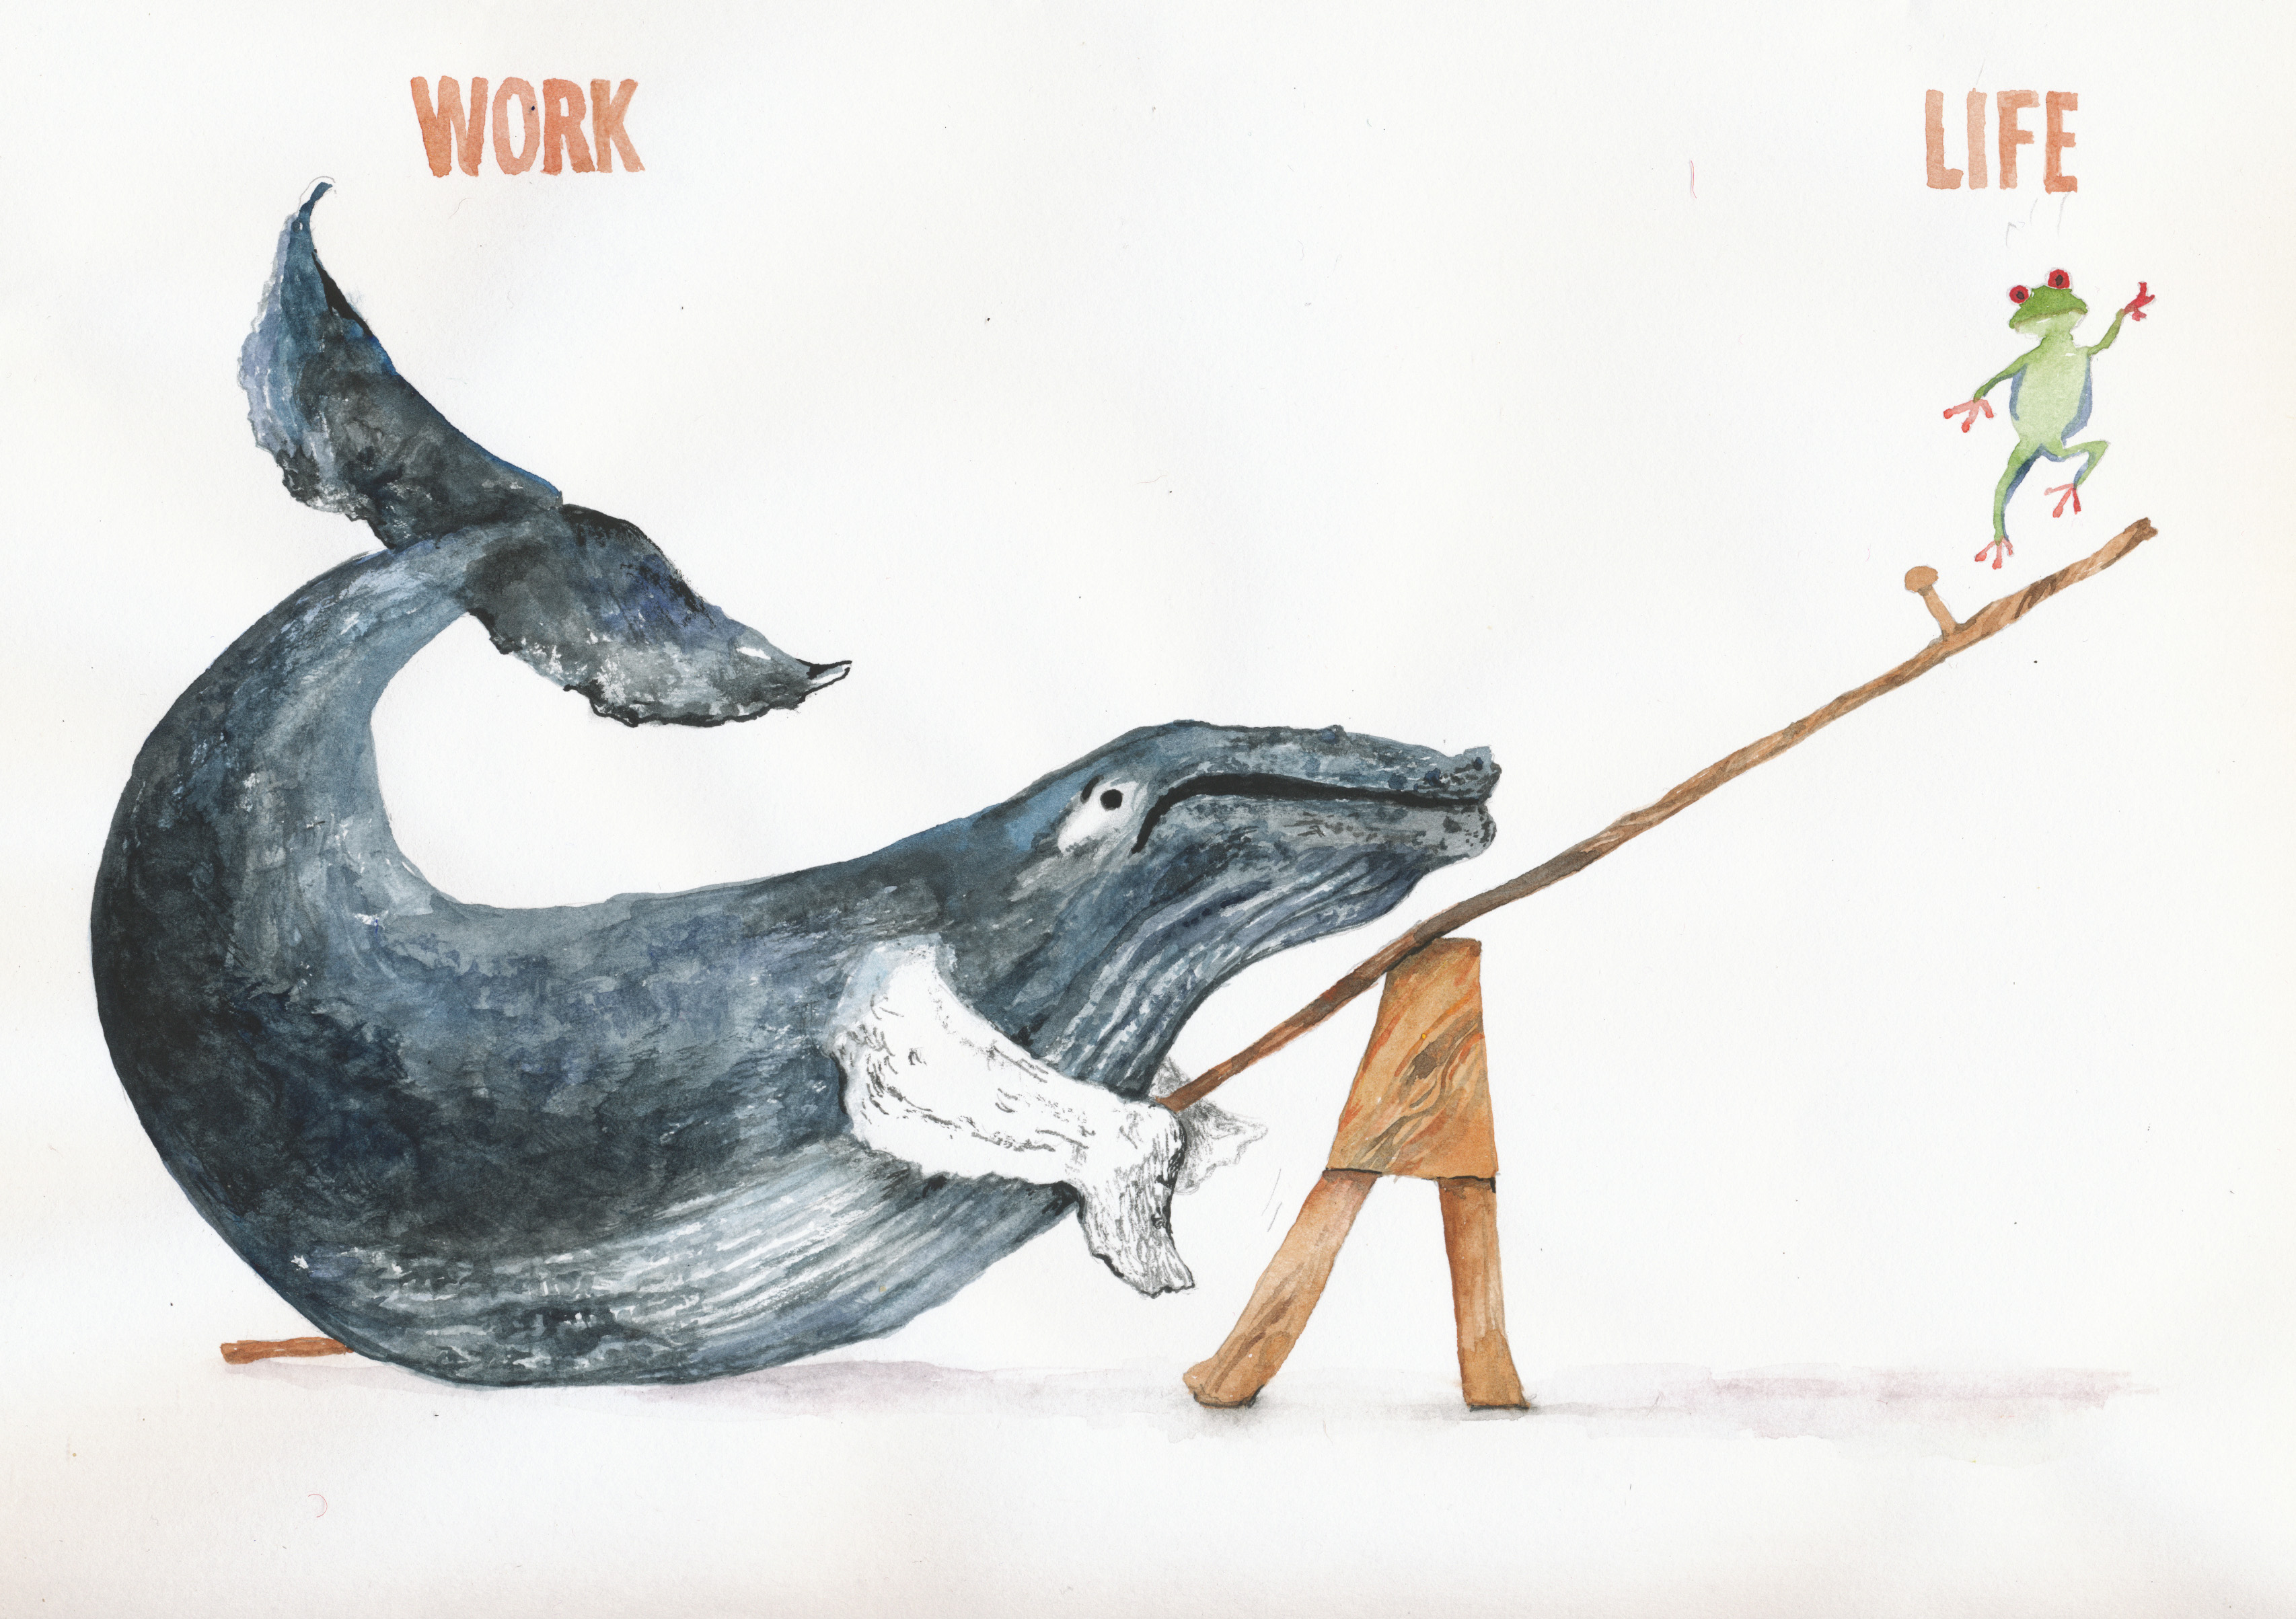 Work-life balance cartoon